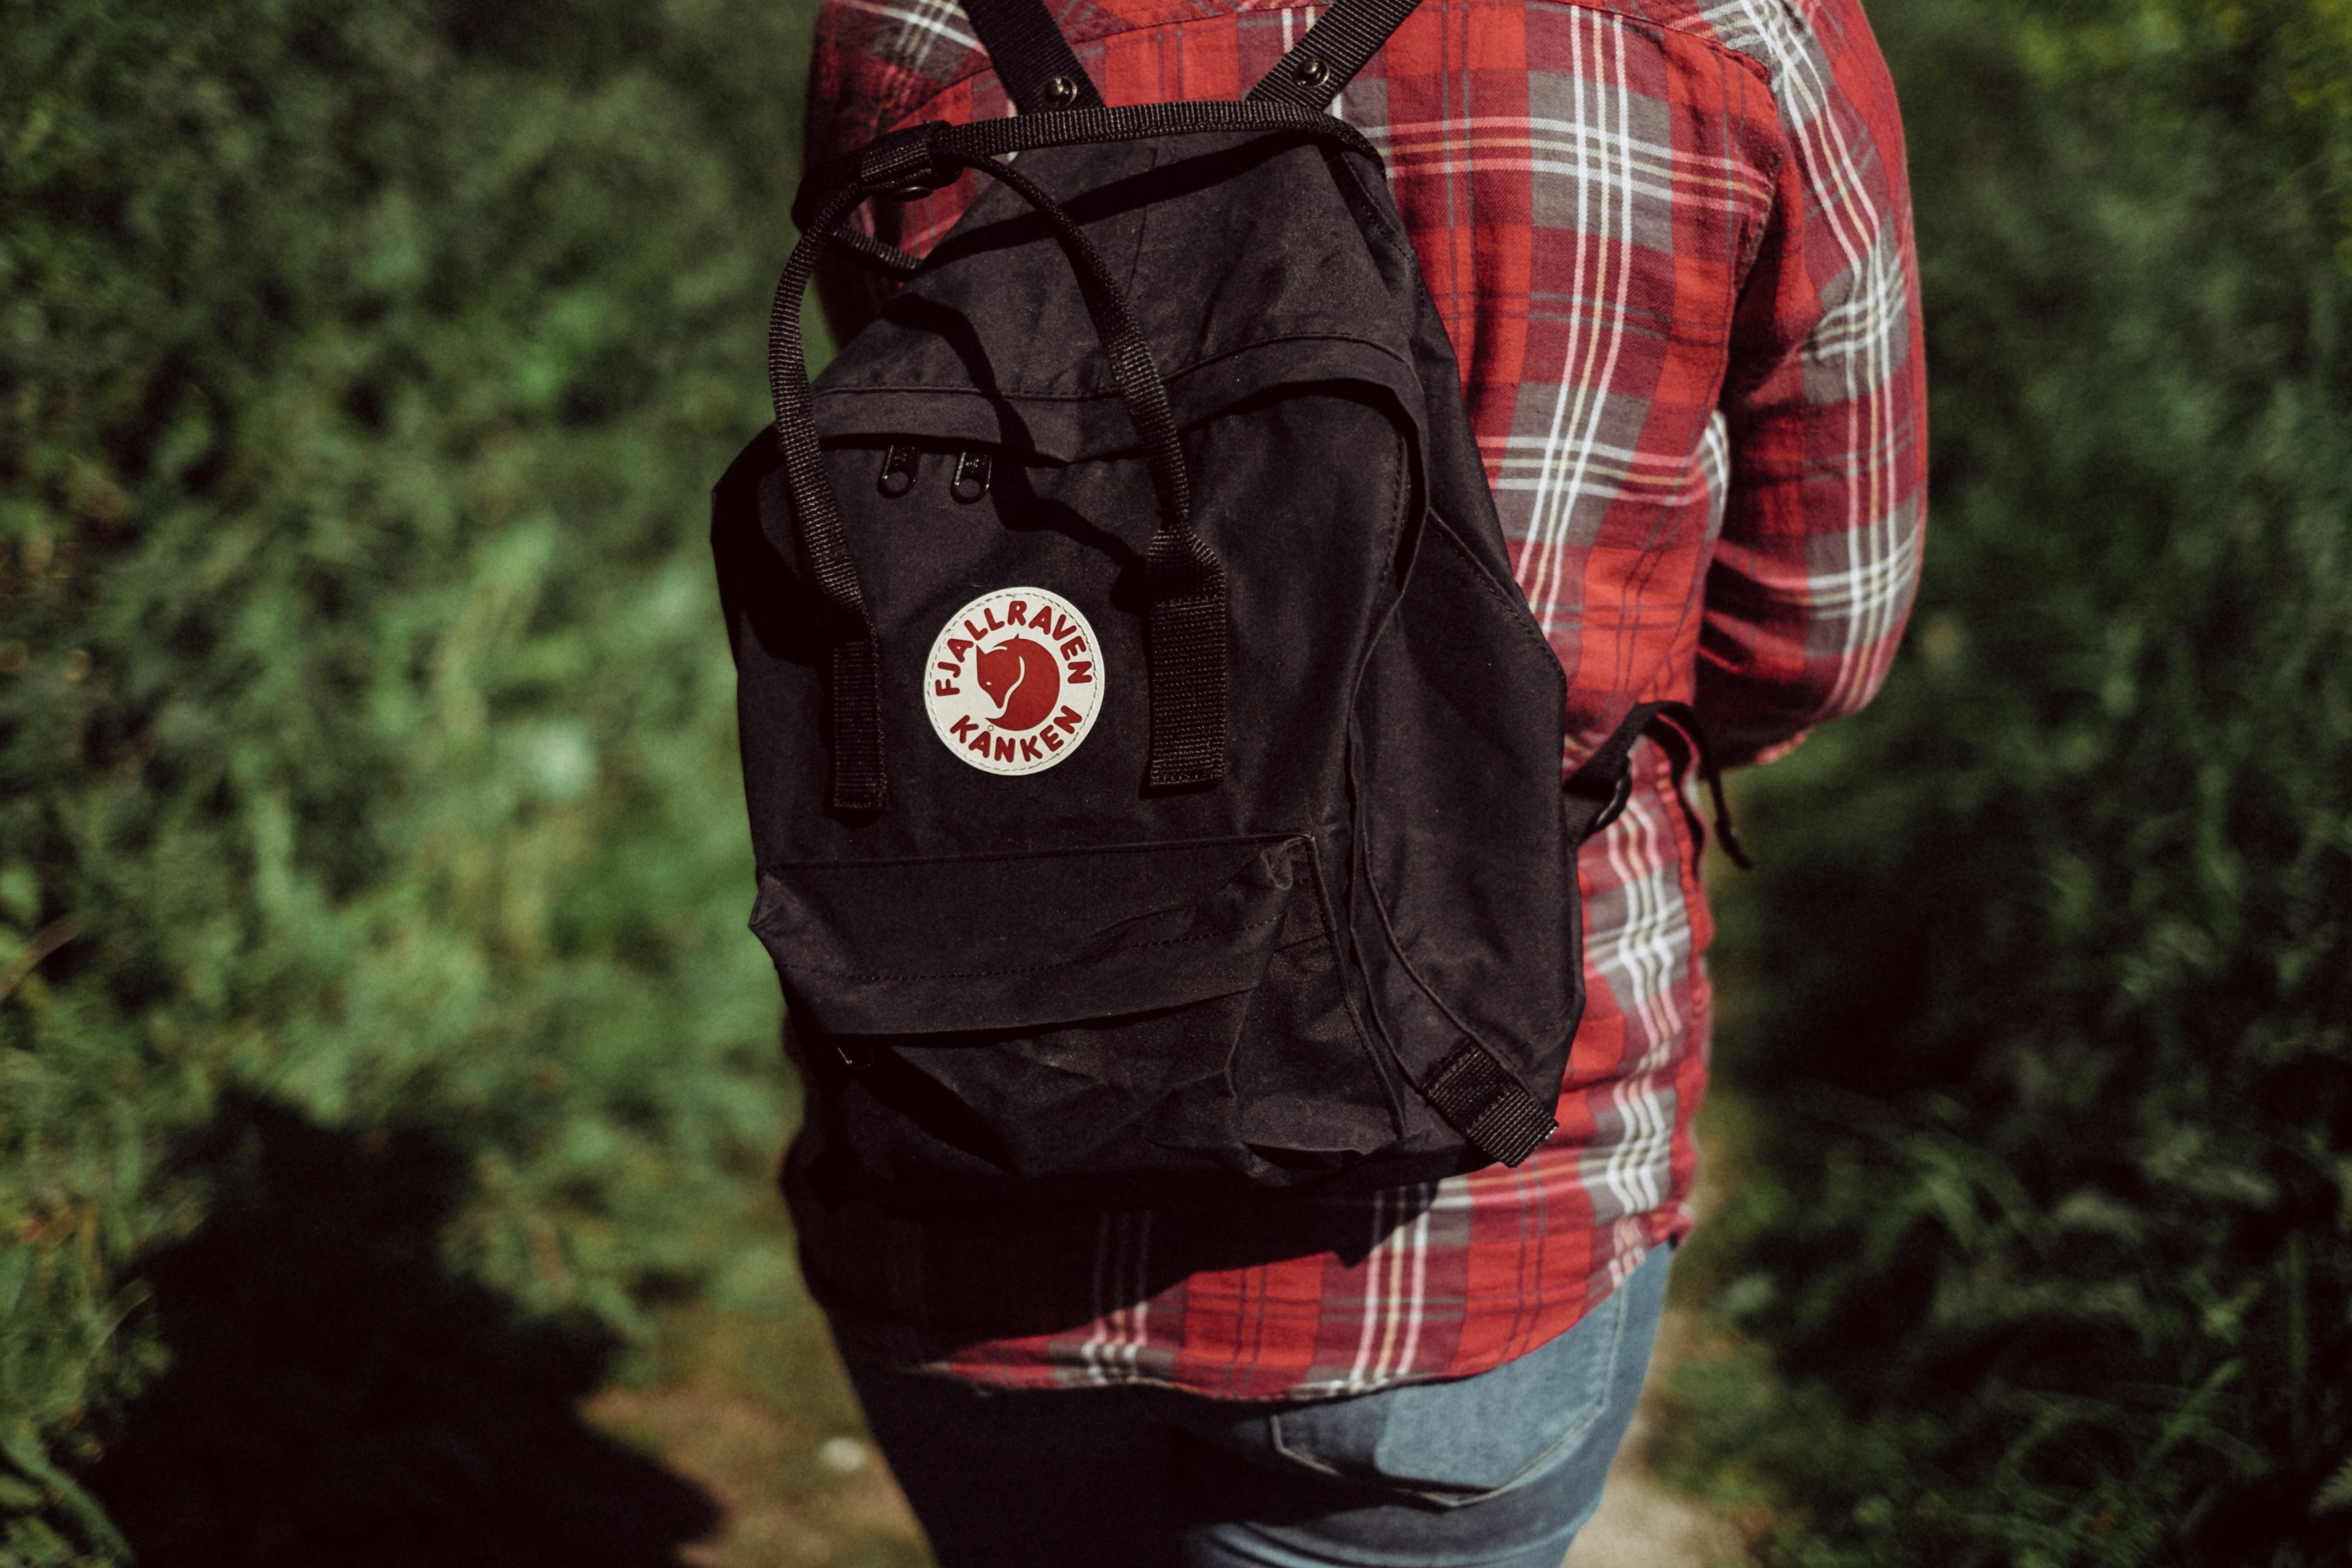 person wearing black backpack